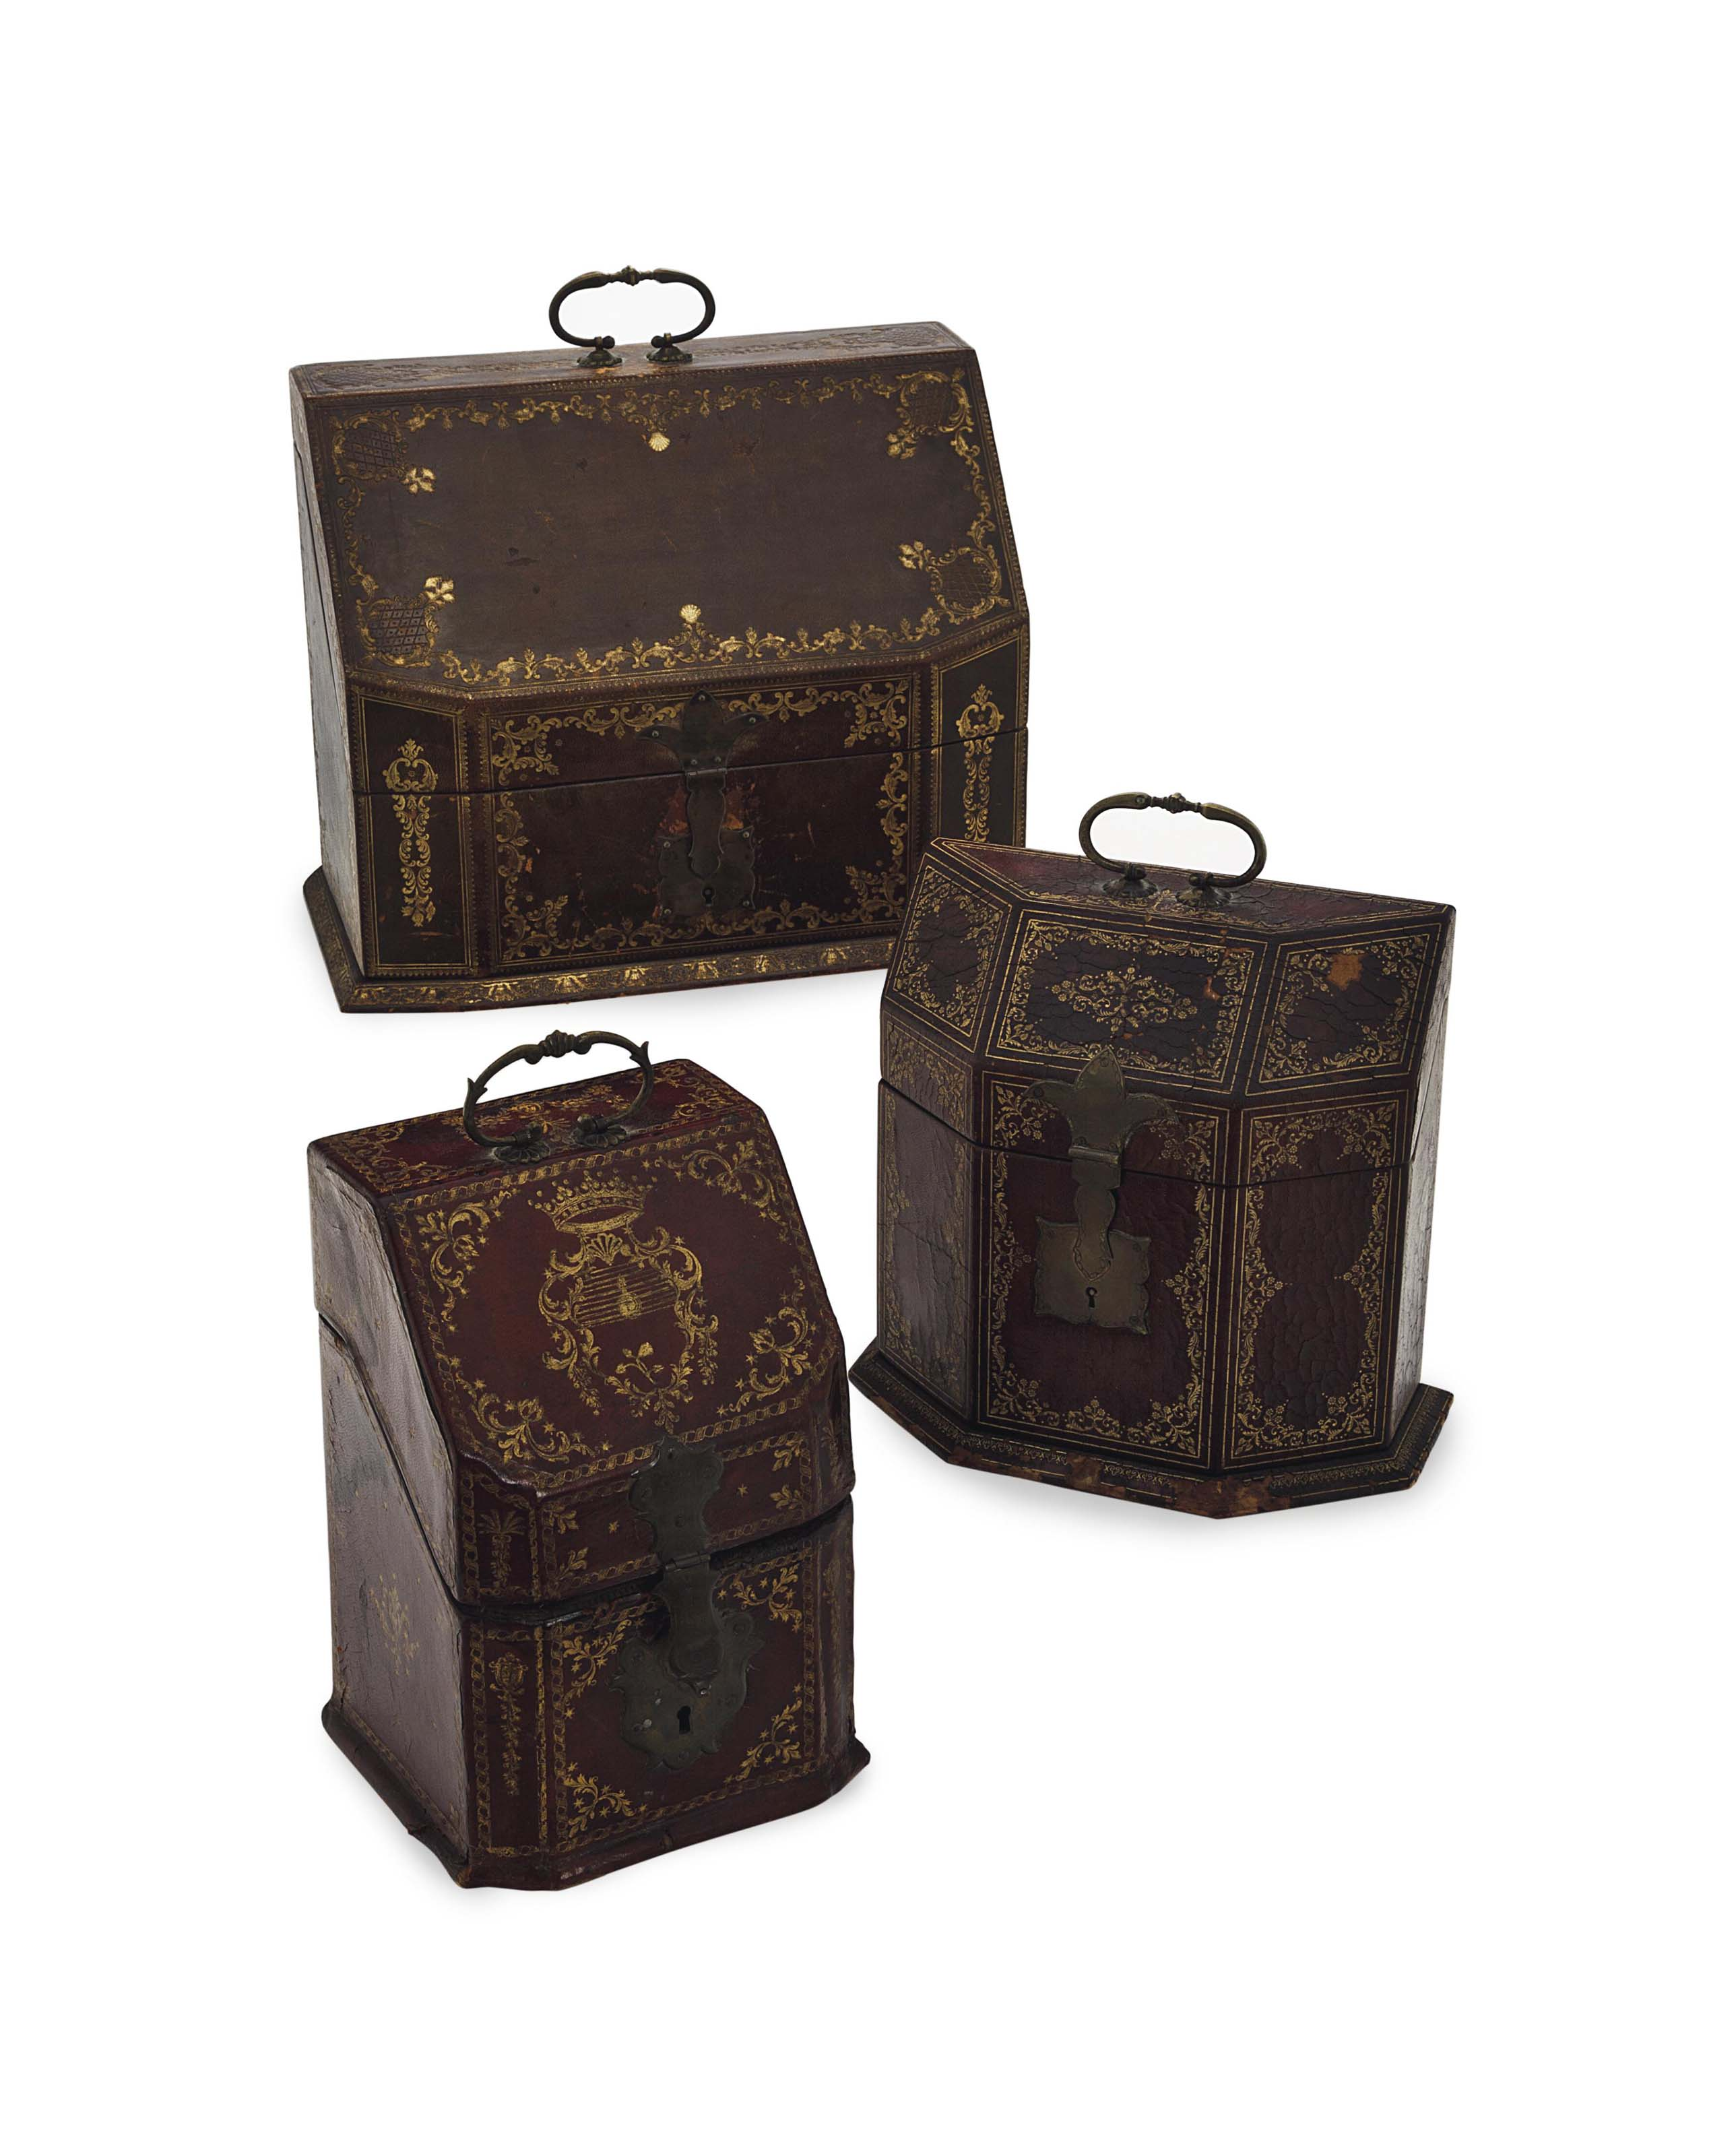 THREE GILT AND TOOLED LEATHER BOXES,